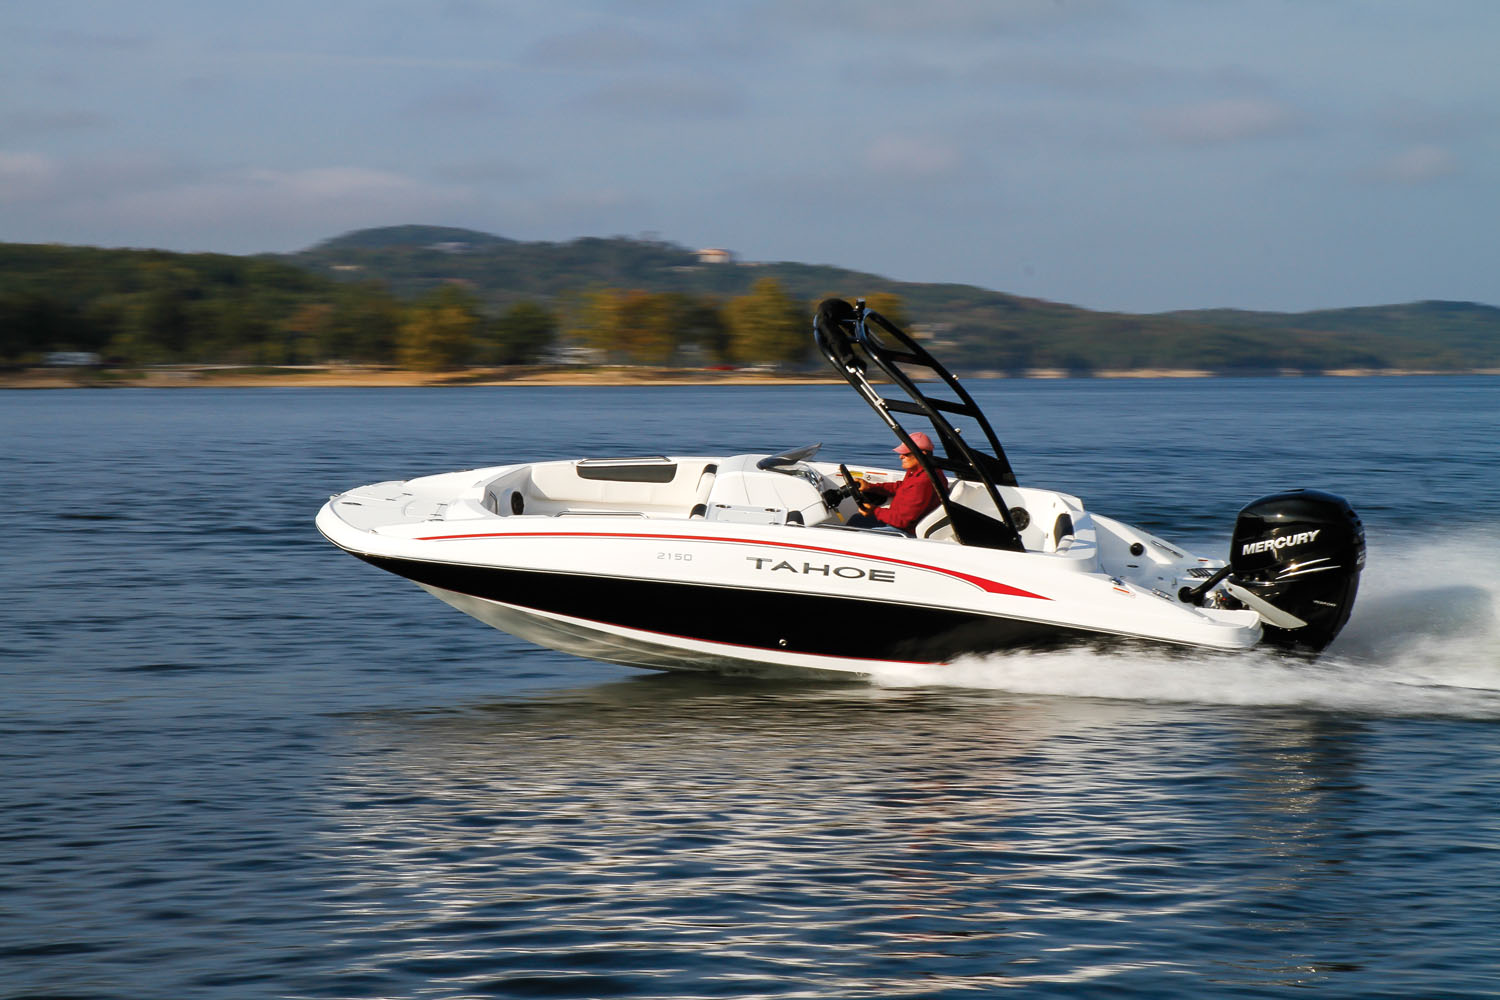 Tahoe 2150 Outboard - Boating World